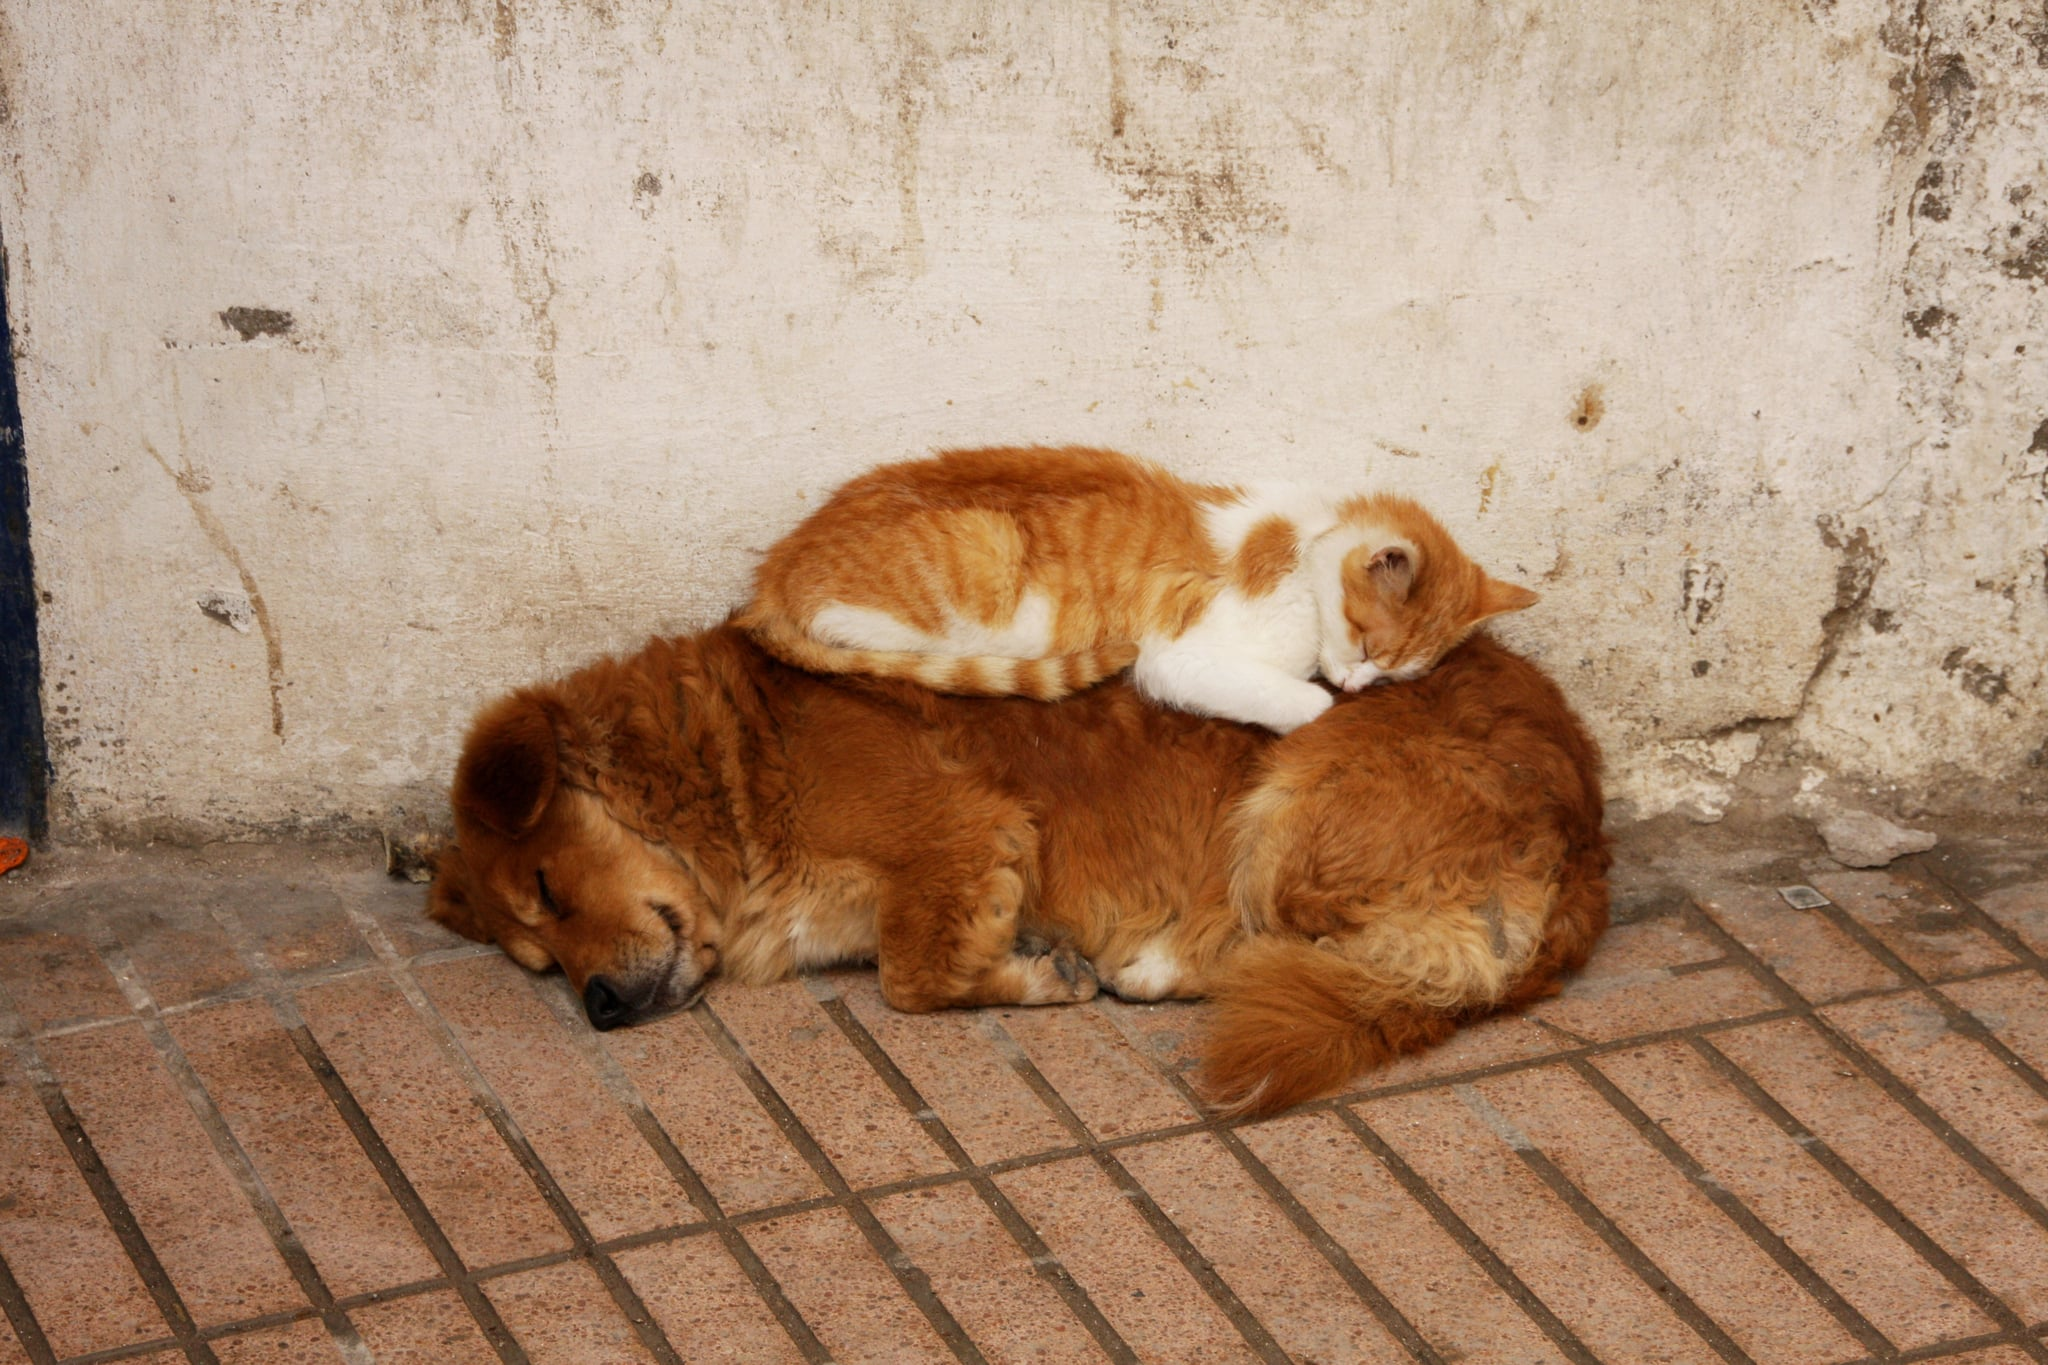 Dog and cat sleeping peacefully together, best friends